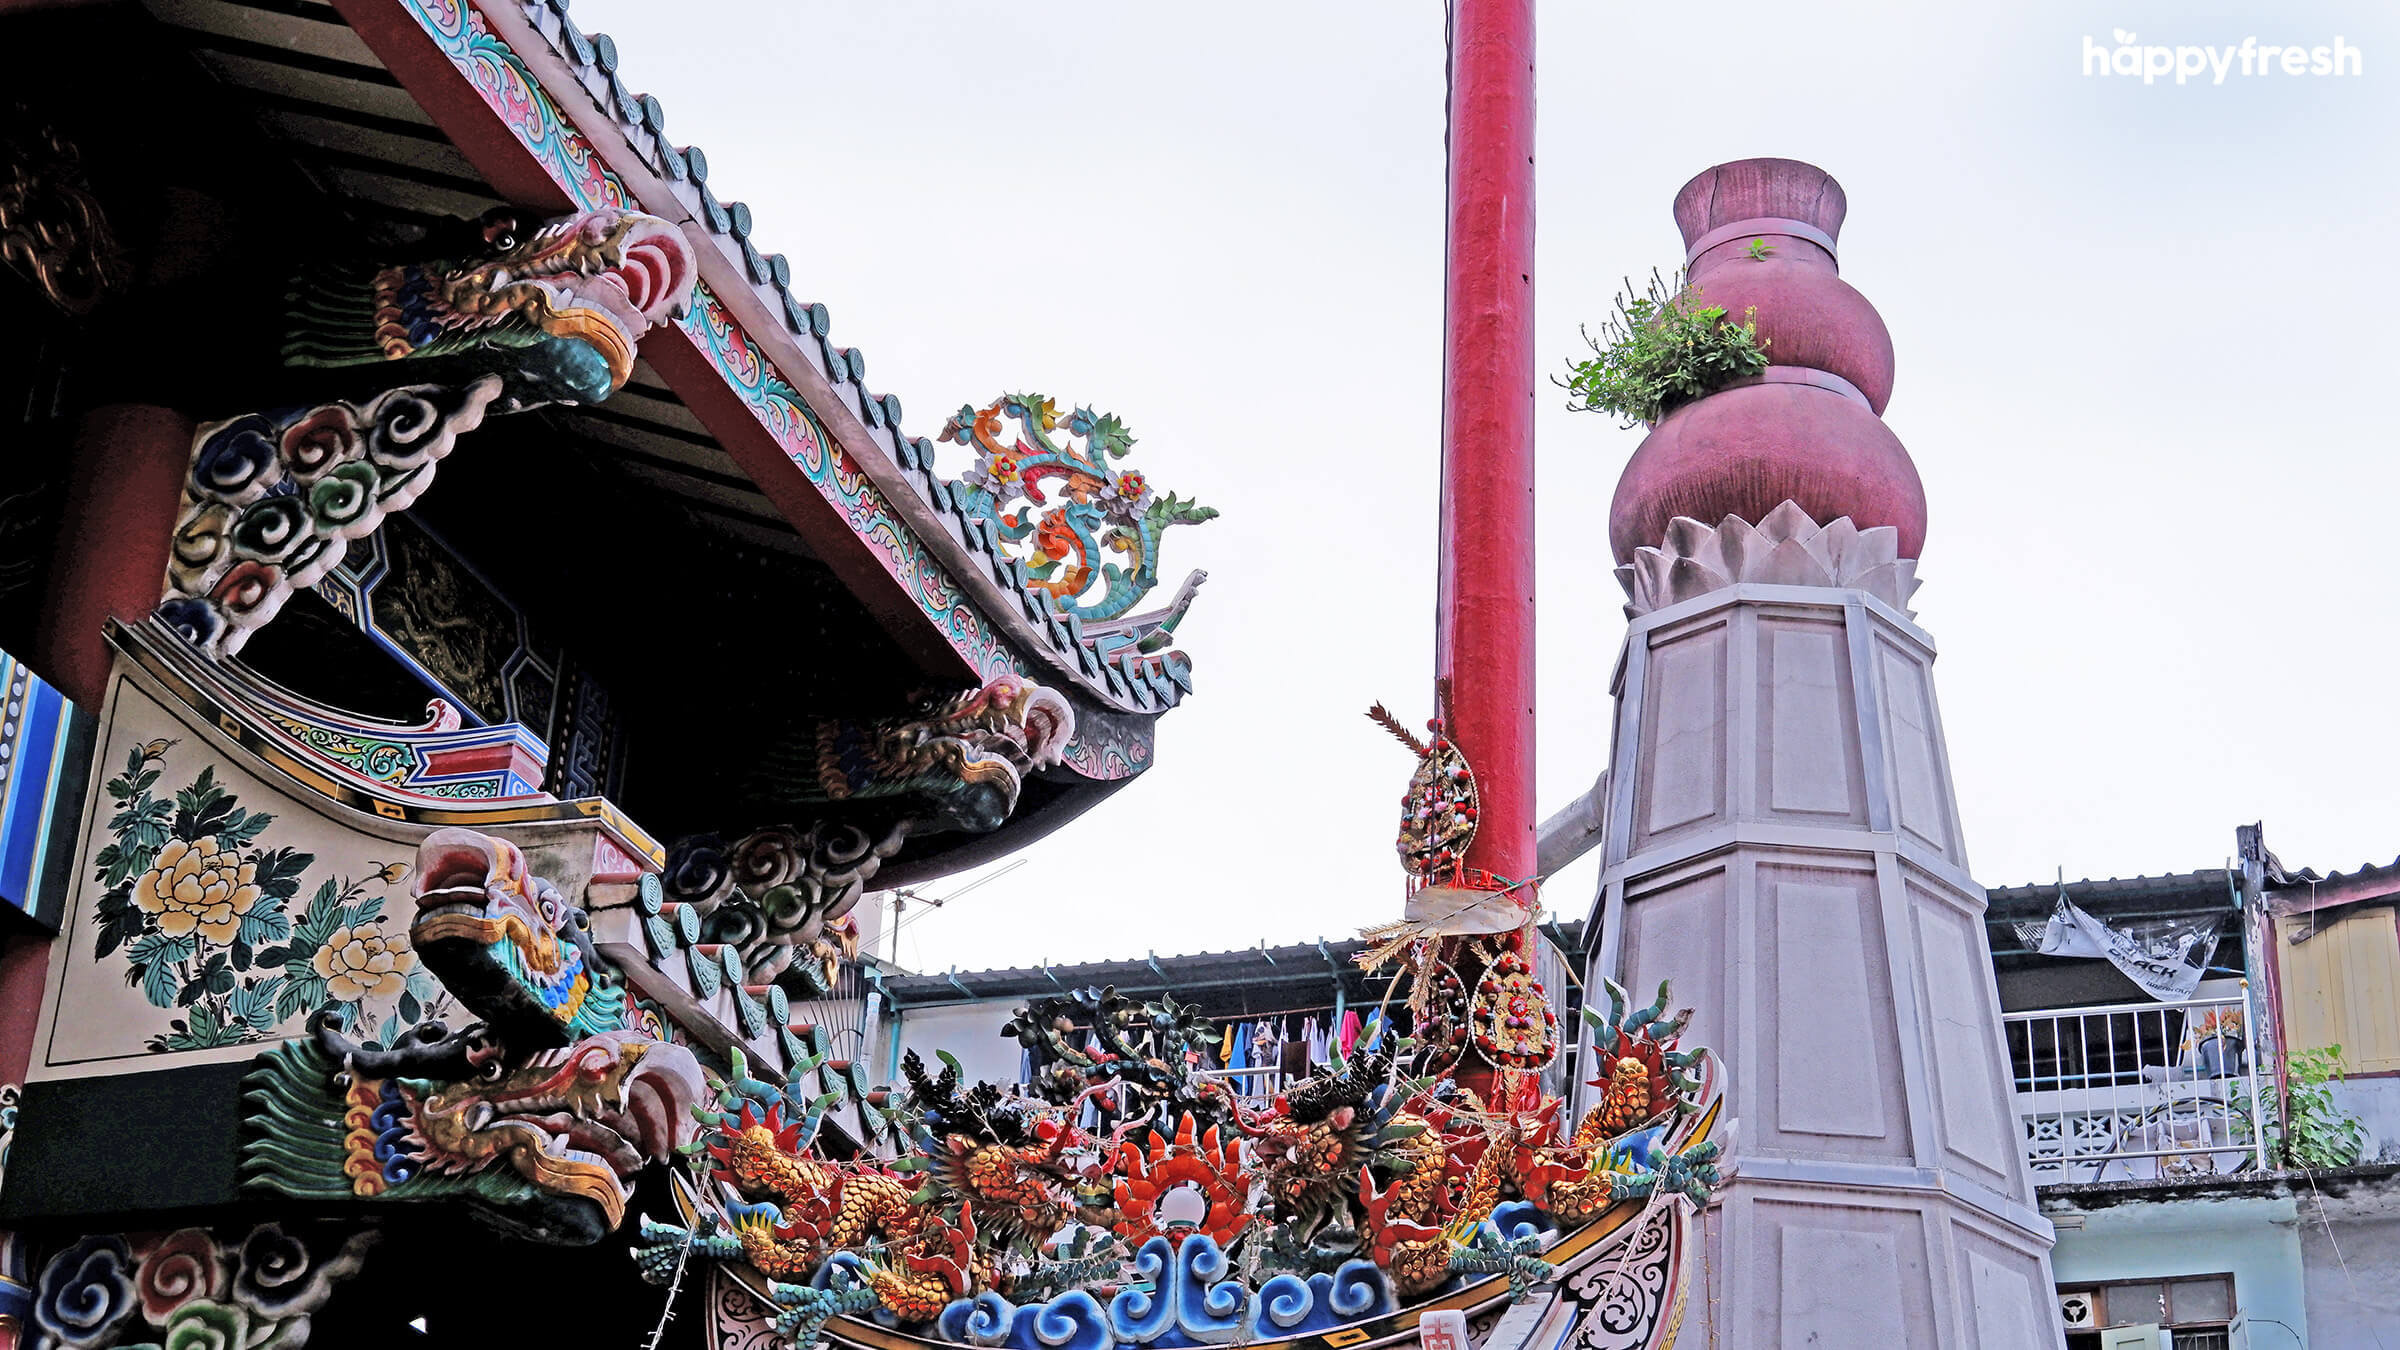 HappyFresh_Visit_6_Chinese_Shrines_In_Chinatown_Tai_Hong_Kong_Shrine_2